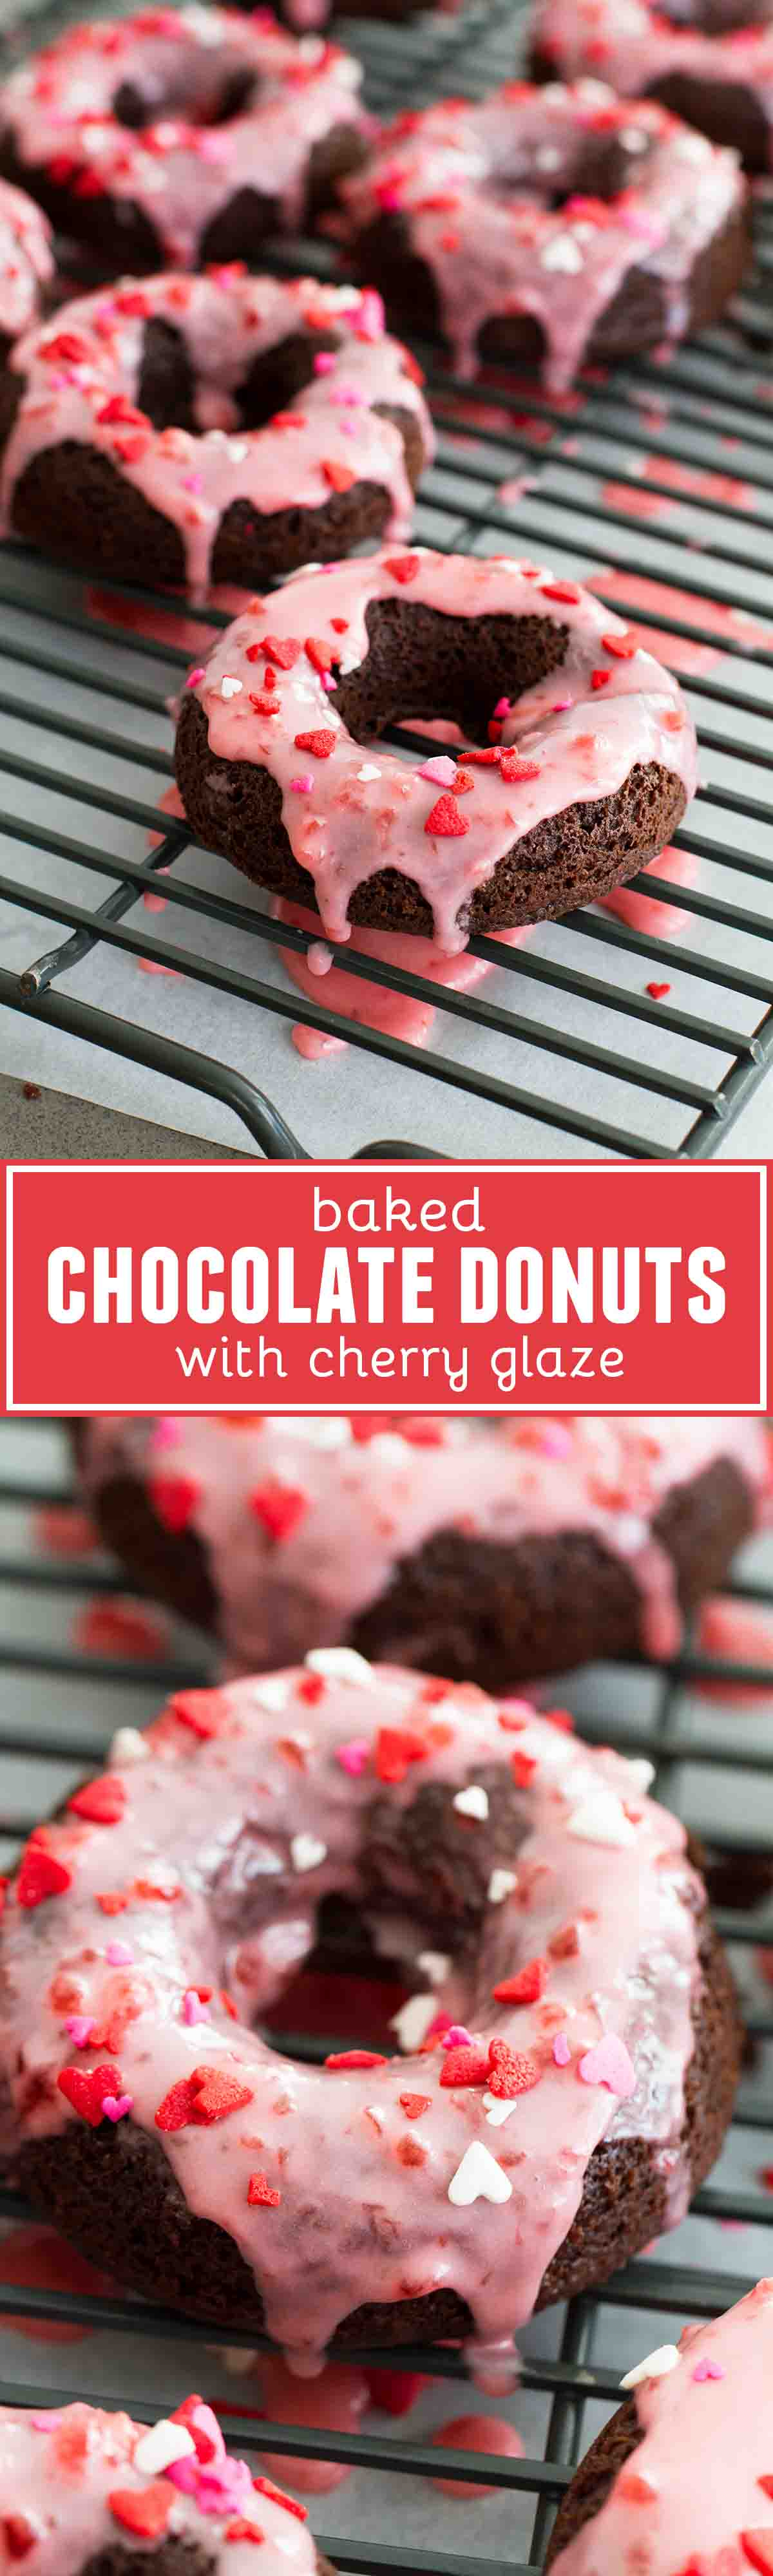 An easy recipe for Baked Chocolate Donuts with an easy Cherry Glaze. Perfect for breakfast, dessert, or a special holiday treat.